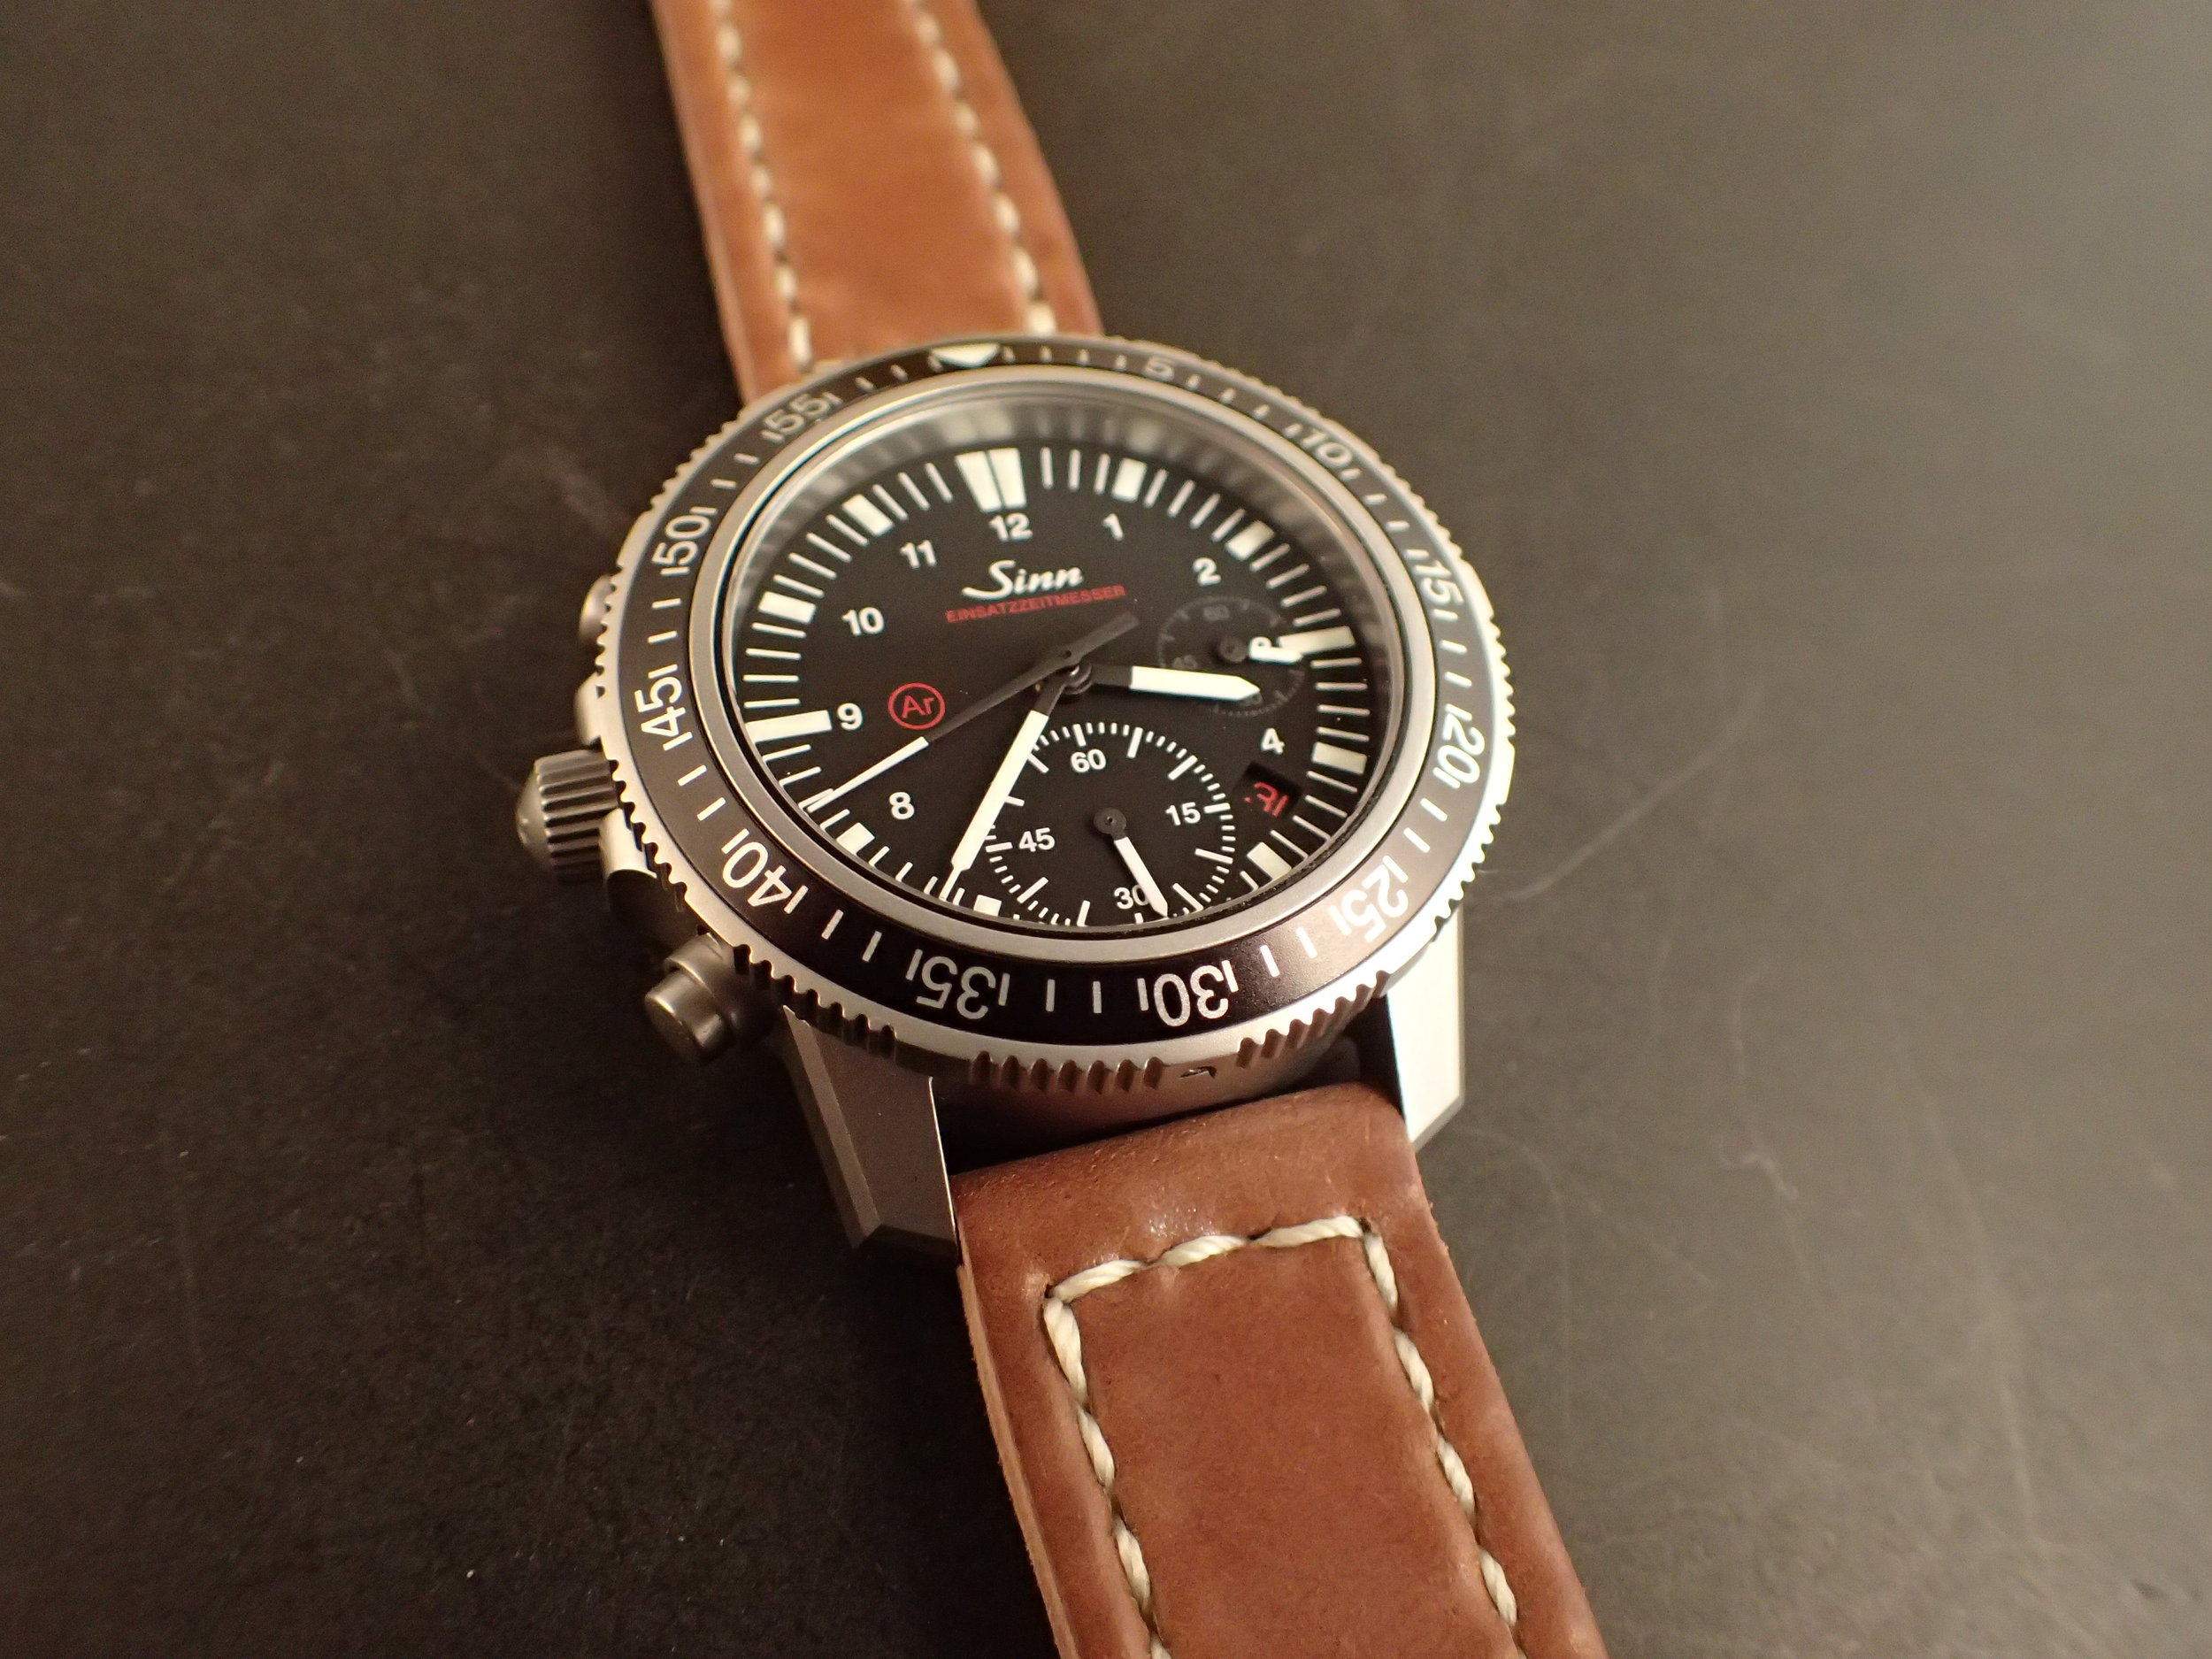 The Sinn 613 on an Arts & Crafts strap made from Horween shell cordovan. Without a doubt, this is the most comfortable way to wear this watch.